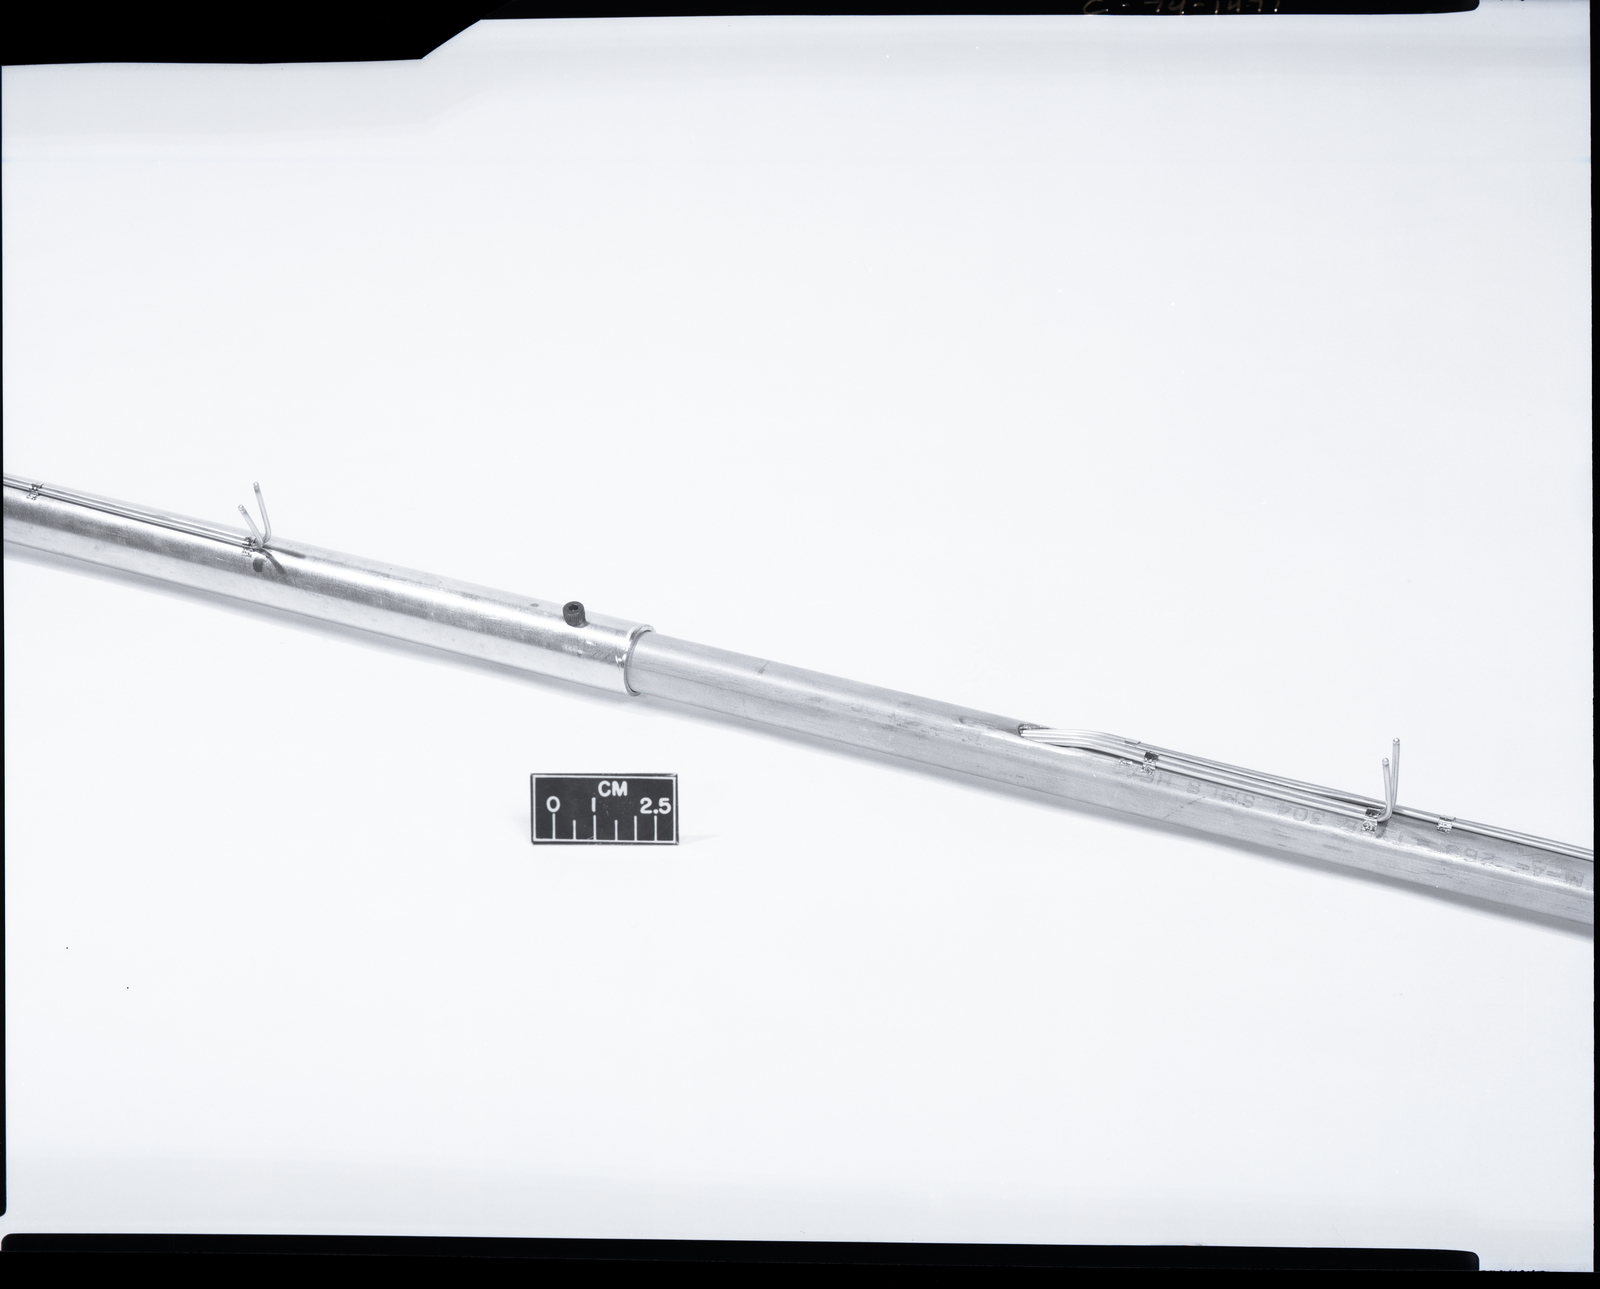 VERTICAL TUBE SUPPORTED THERMOCOUPLE PROBE